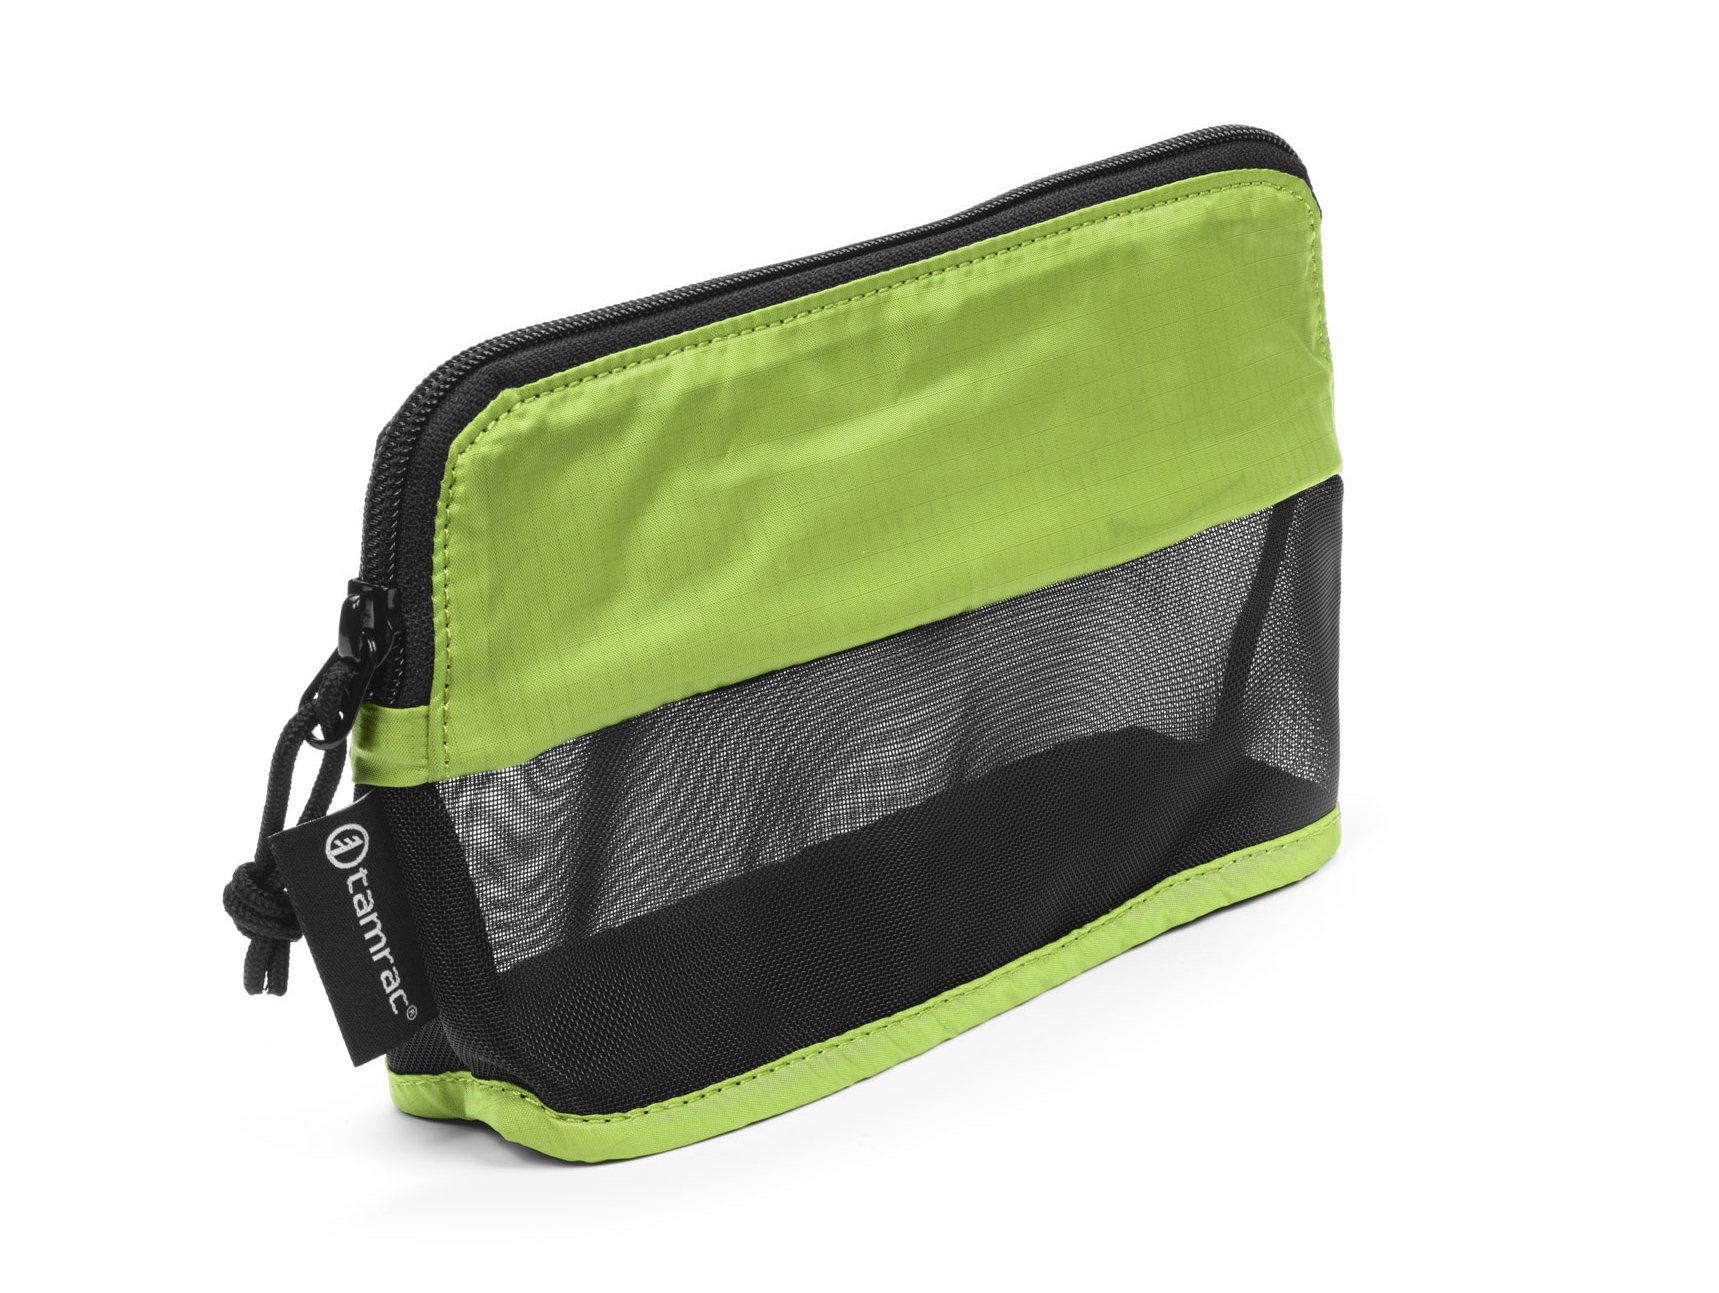 Tamrac Goblin Accessory Pouch 1.0 Pouch Black,Green - equipment cases (Pouch, Black, Green, Nylon)